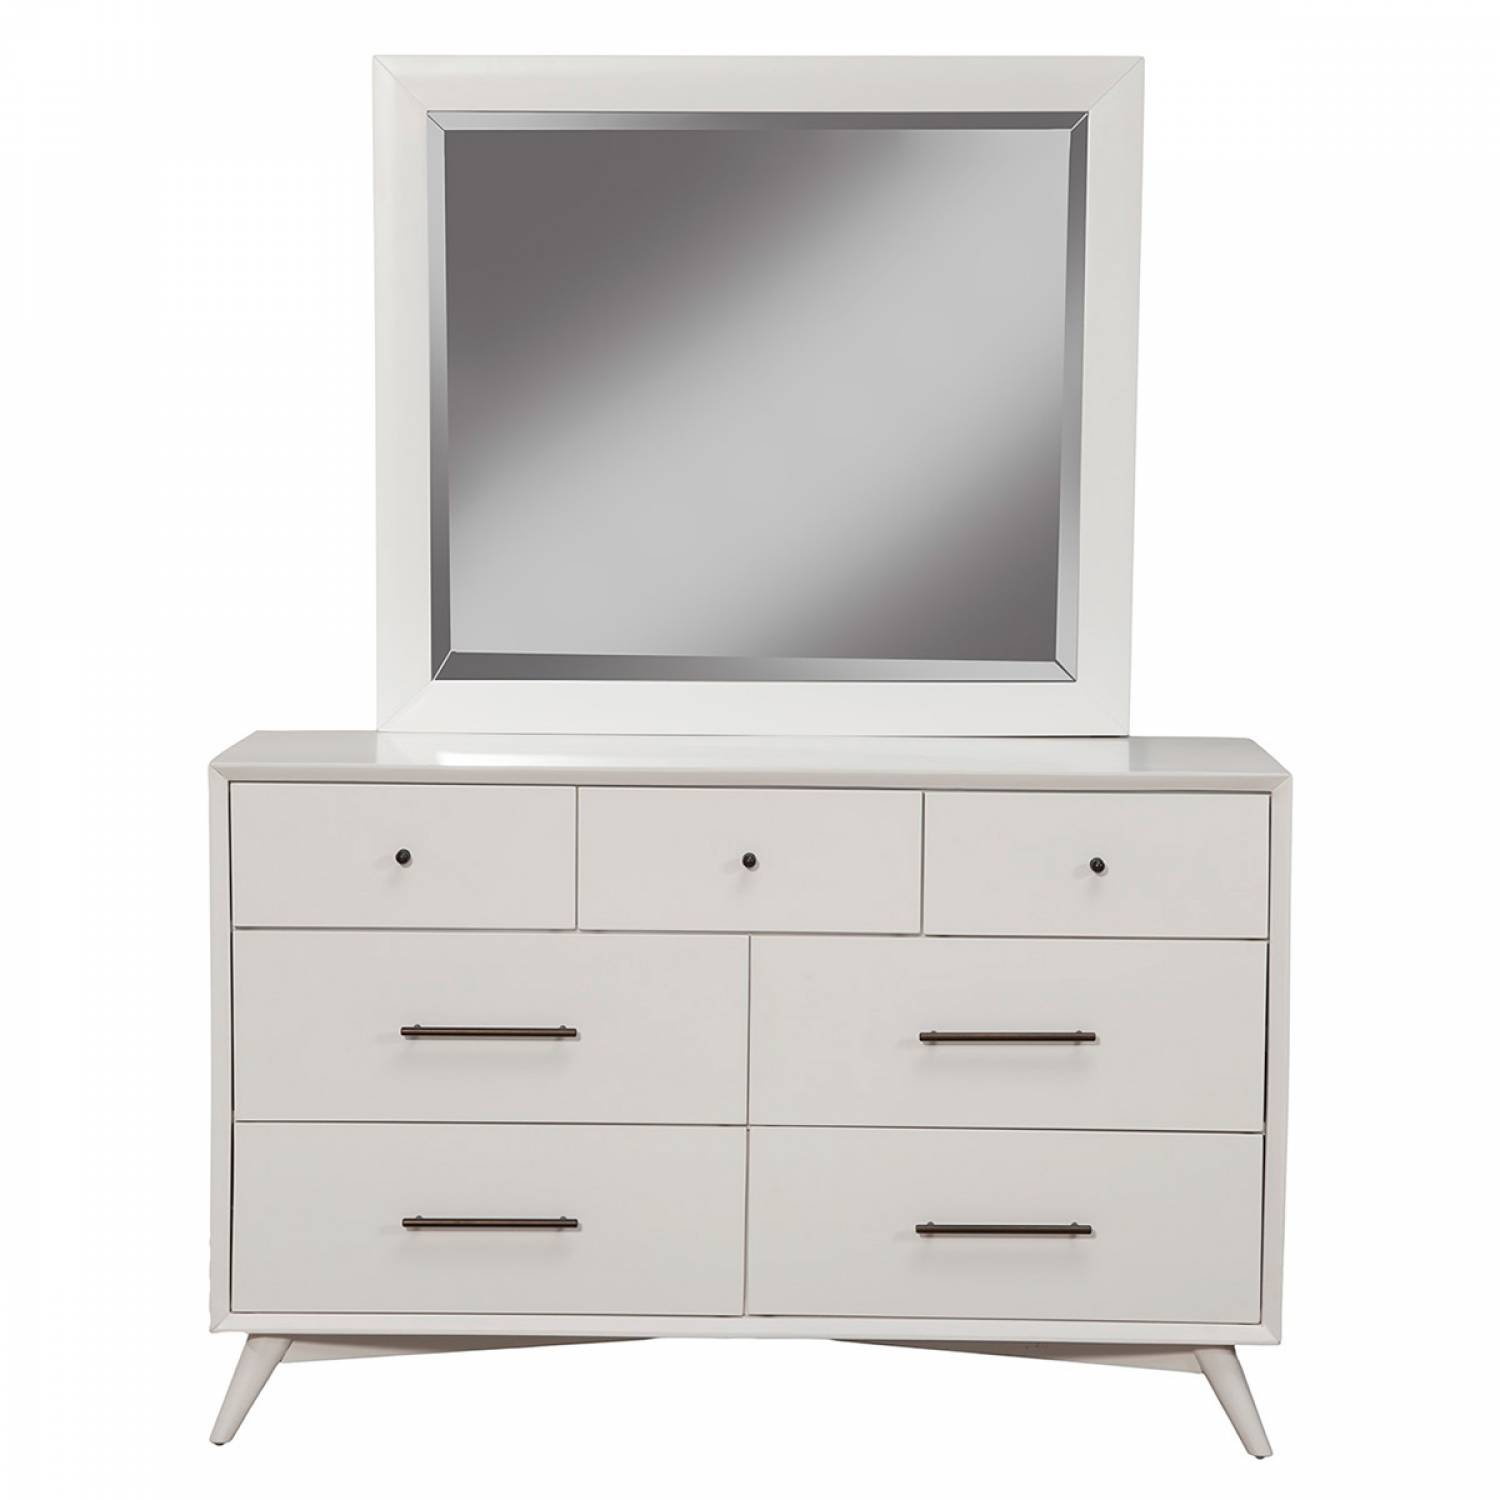 966 w alpine furniture 966 w 06 flynn mid century modern mirror white finish